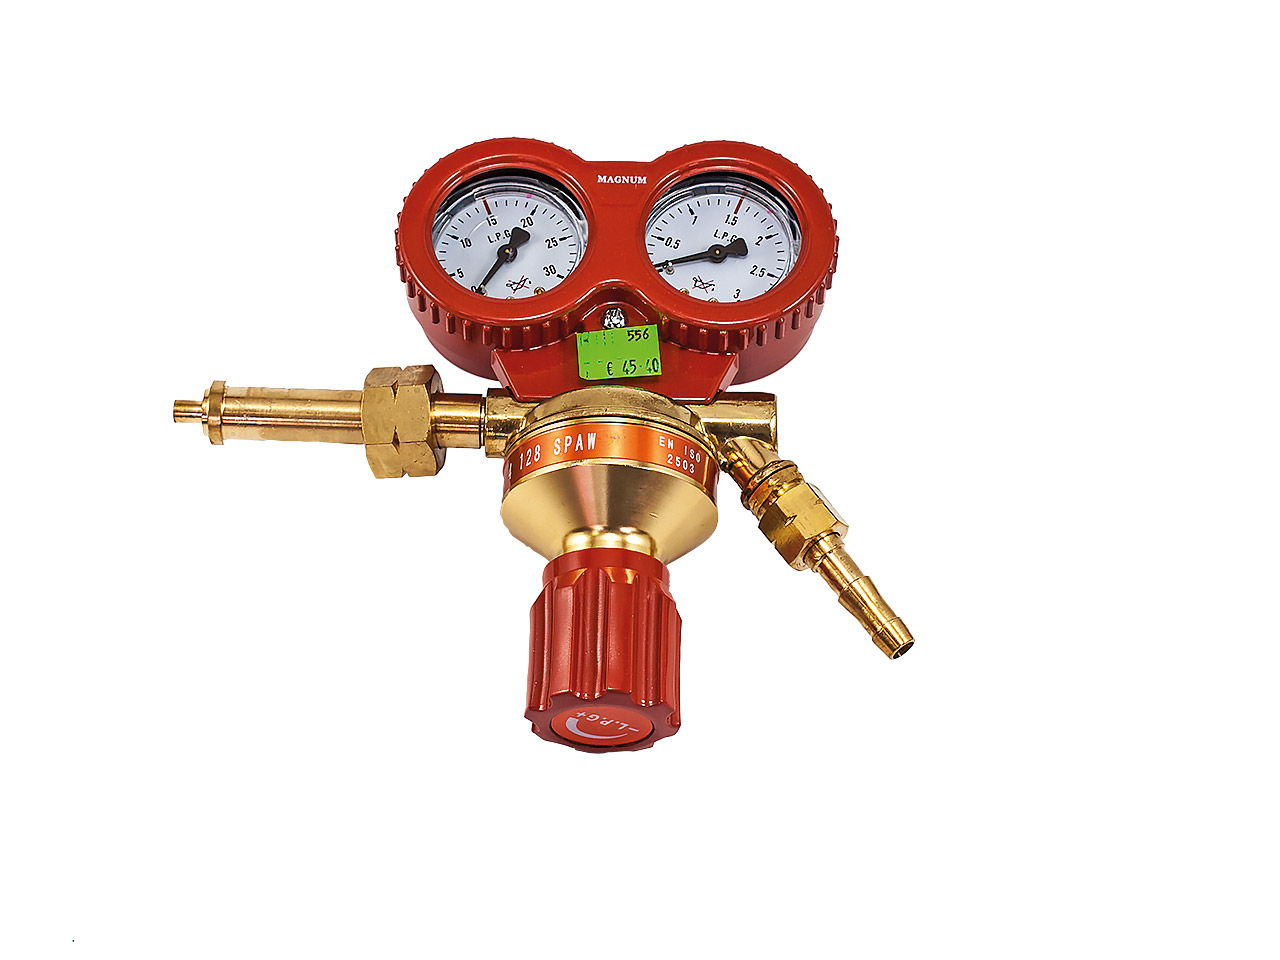 Manometer LPG 2 MAN 11 KG NEW TYPE